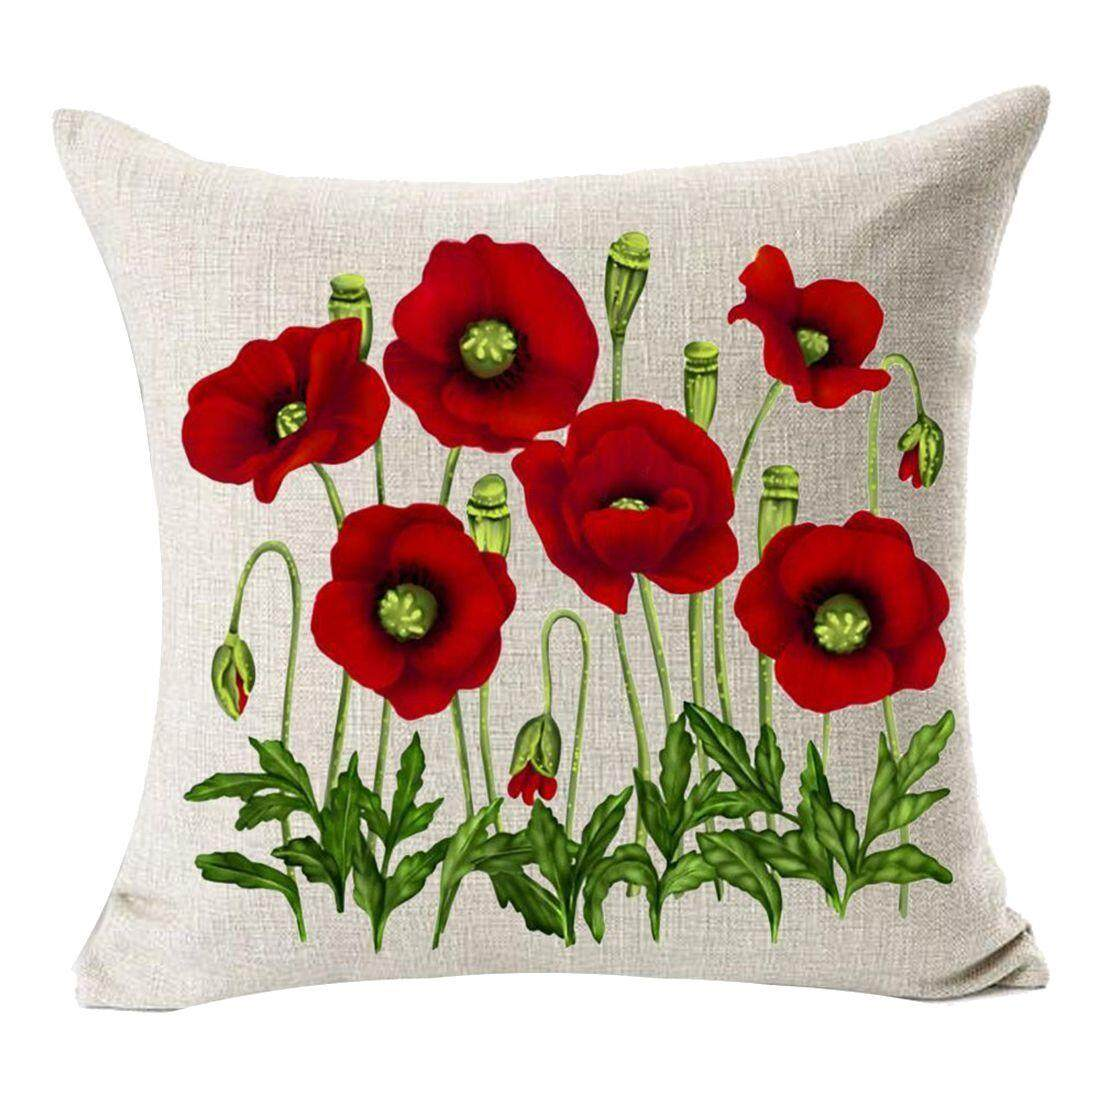 Buy Sell Cheapest Wbs042 Green Square Best Quality Product Deals Houseofcuff Leather Gift Black Enchanting Beautiful Oil Painting Red Poppy Flowers Anniversary Day Present Cotton Linen Home Decorative Throw